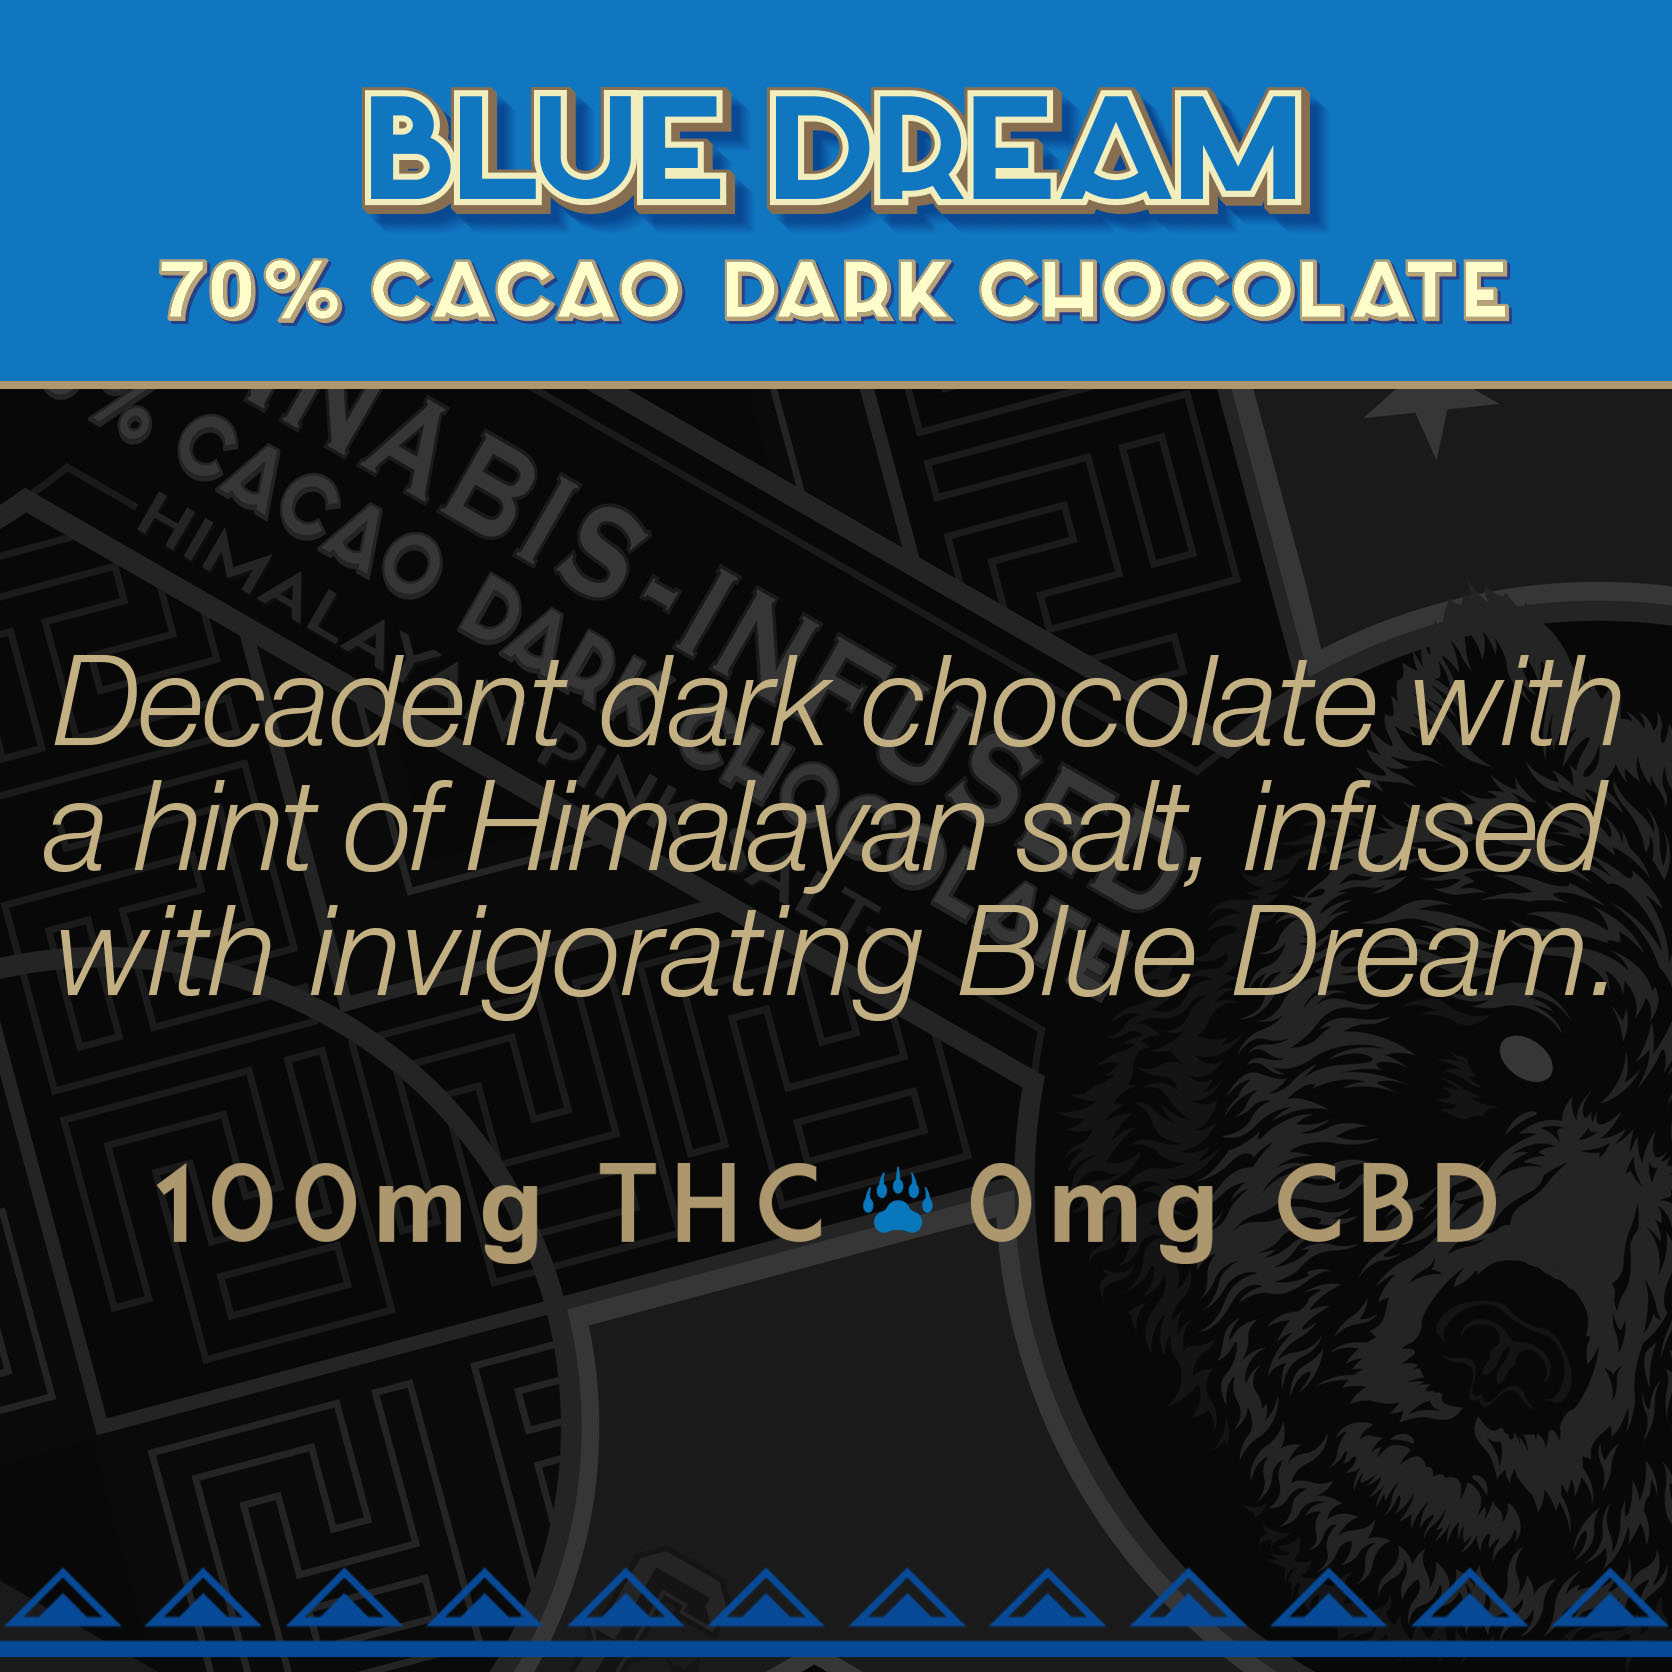 blueDream70.jpg